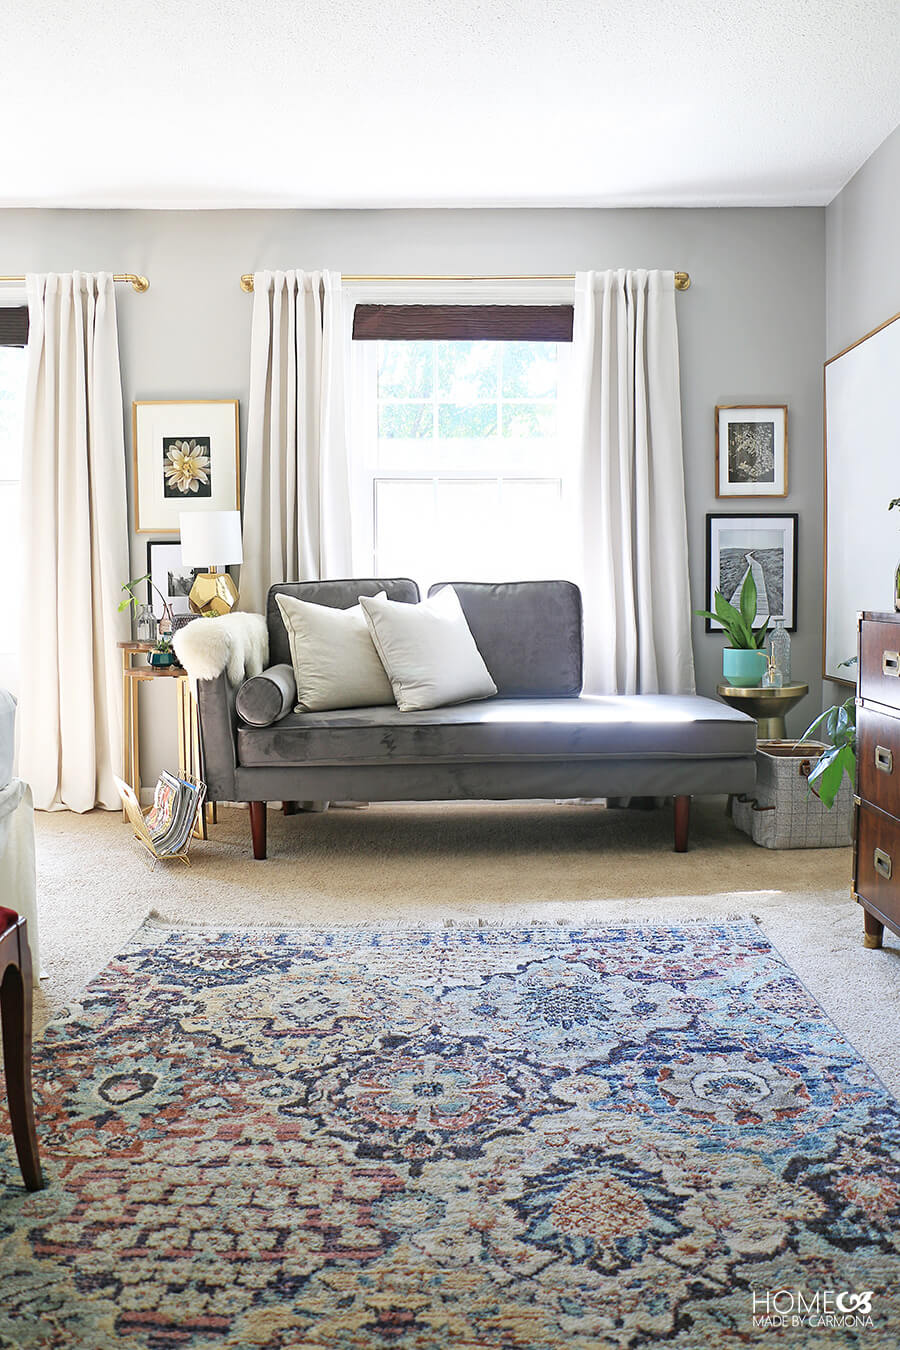 BHG-Chaise-lounge-in-styled-room